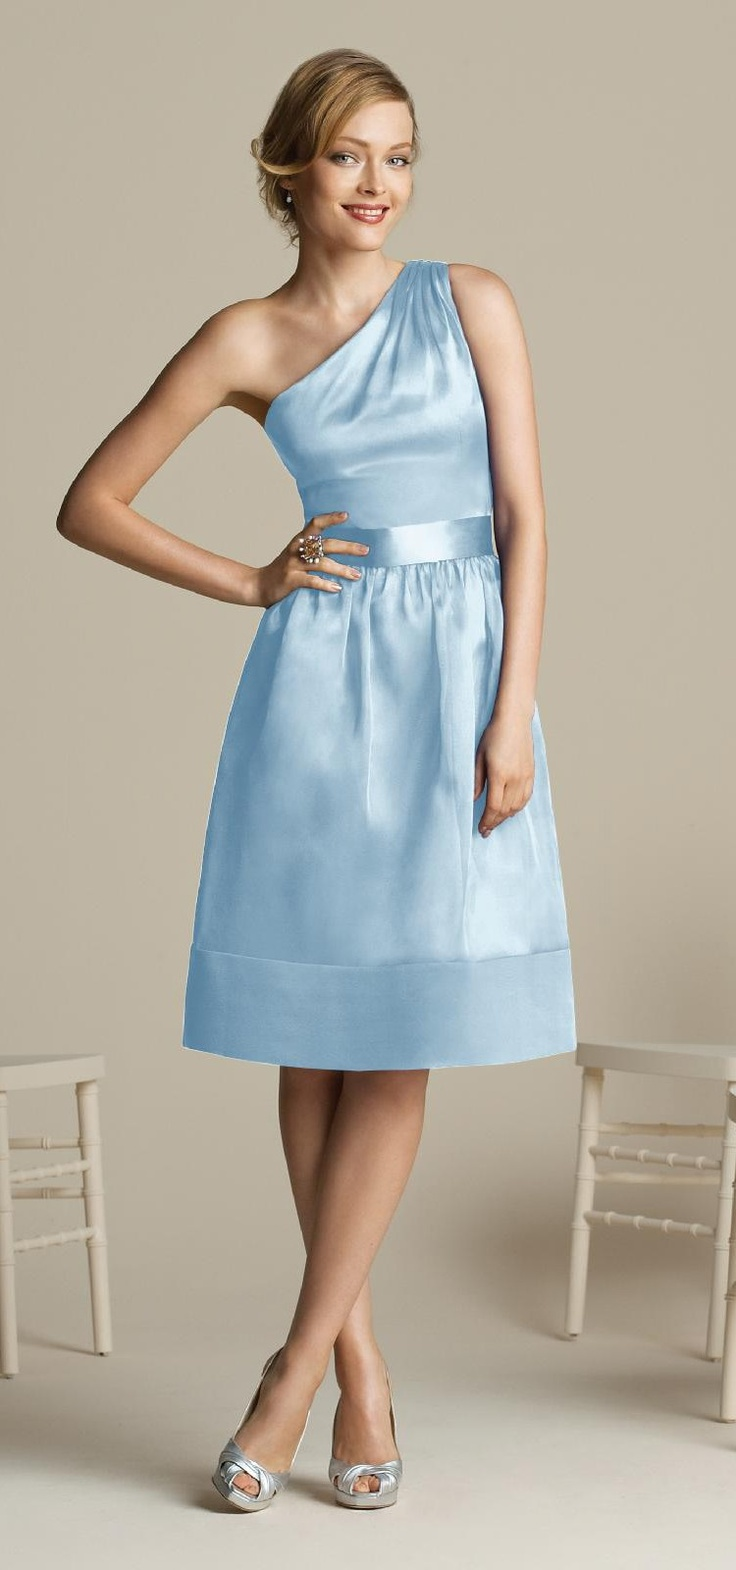 Bridesmaid dress ice blue themes colors pinterest for Ice blue wedding dress